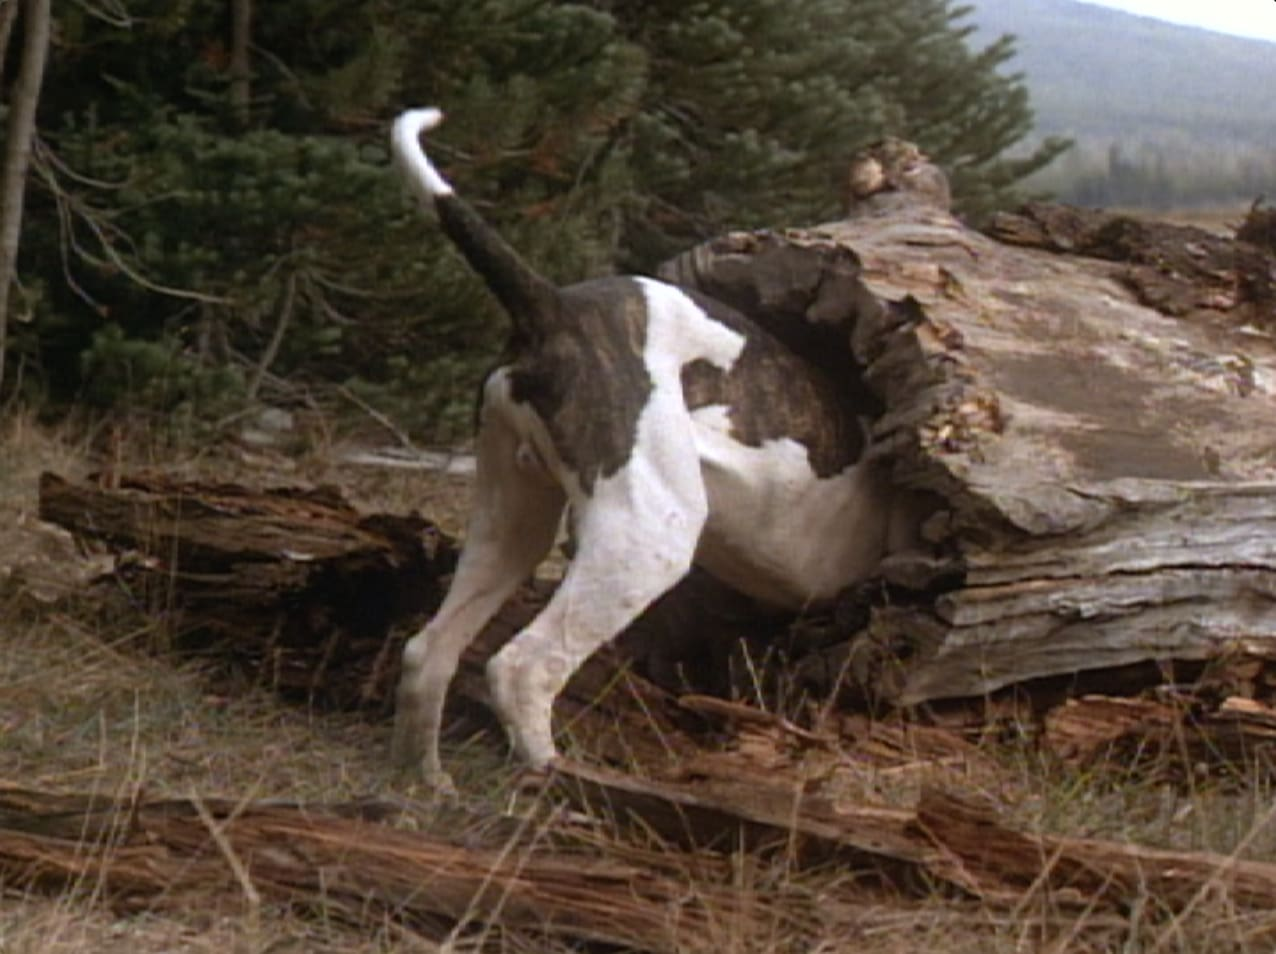 Chance gets skunked in Homeward Bound